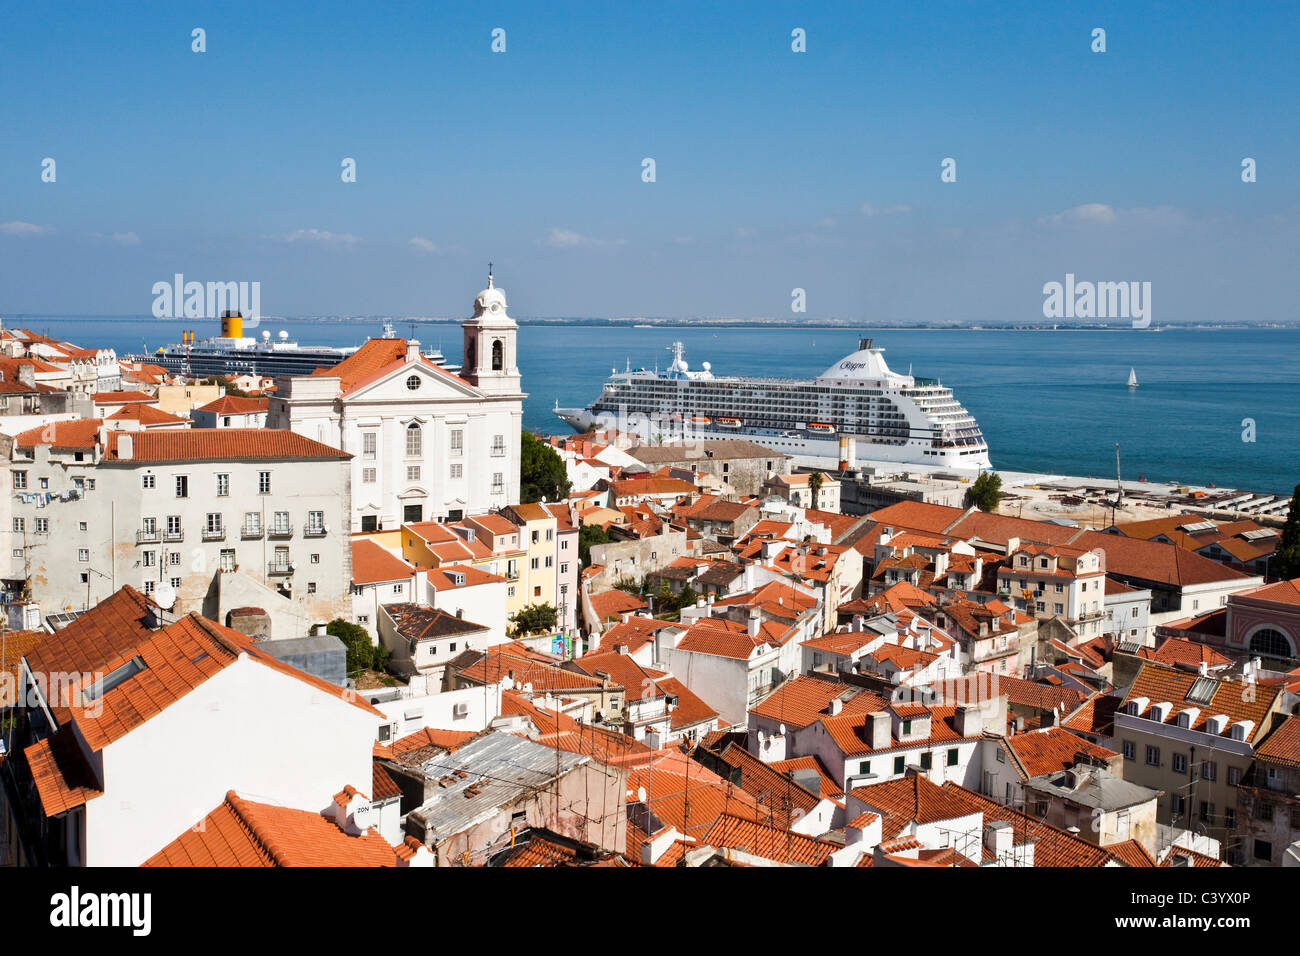 Portugal, Europe, Lisbon, Alfama, Old Town, roofs, sea, ships - Stock Image